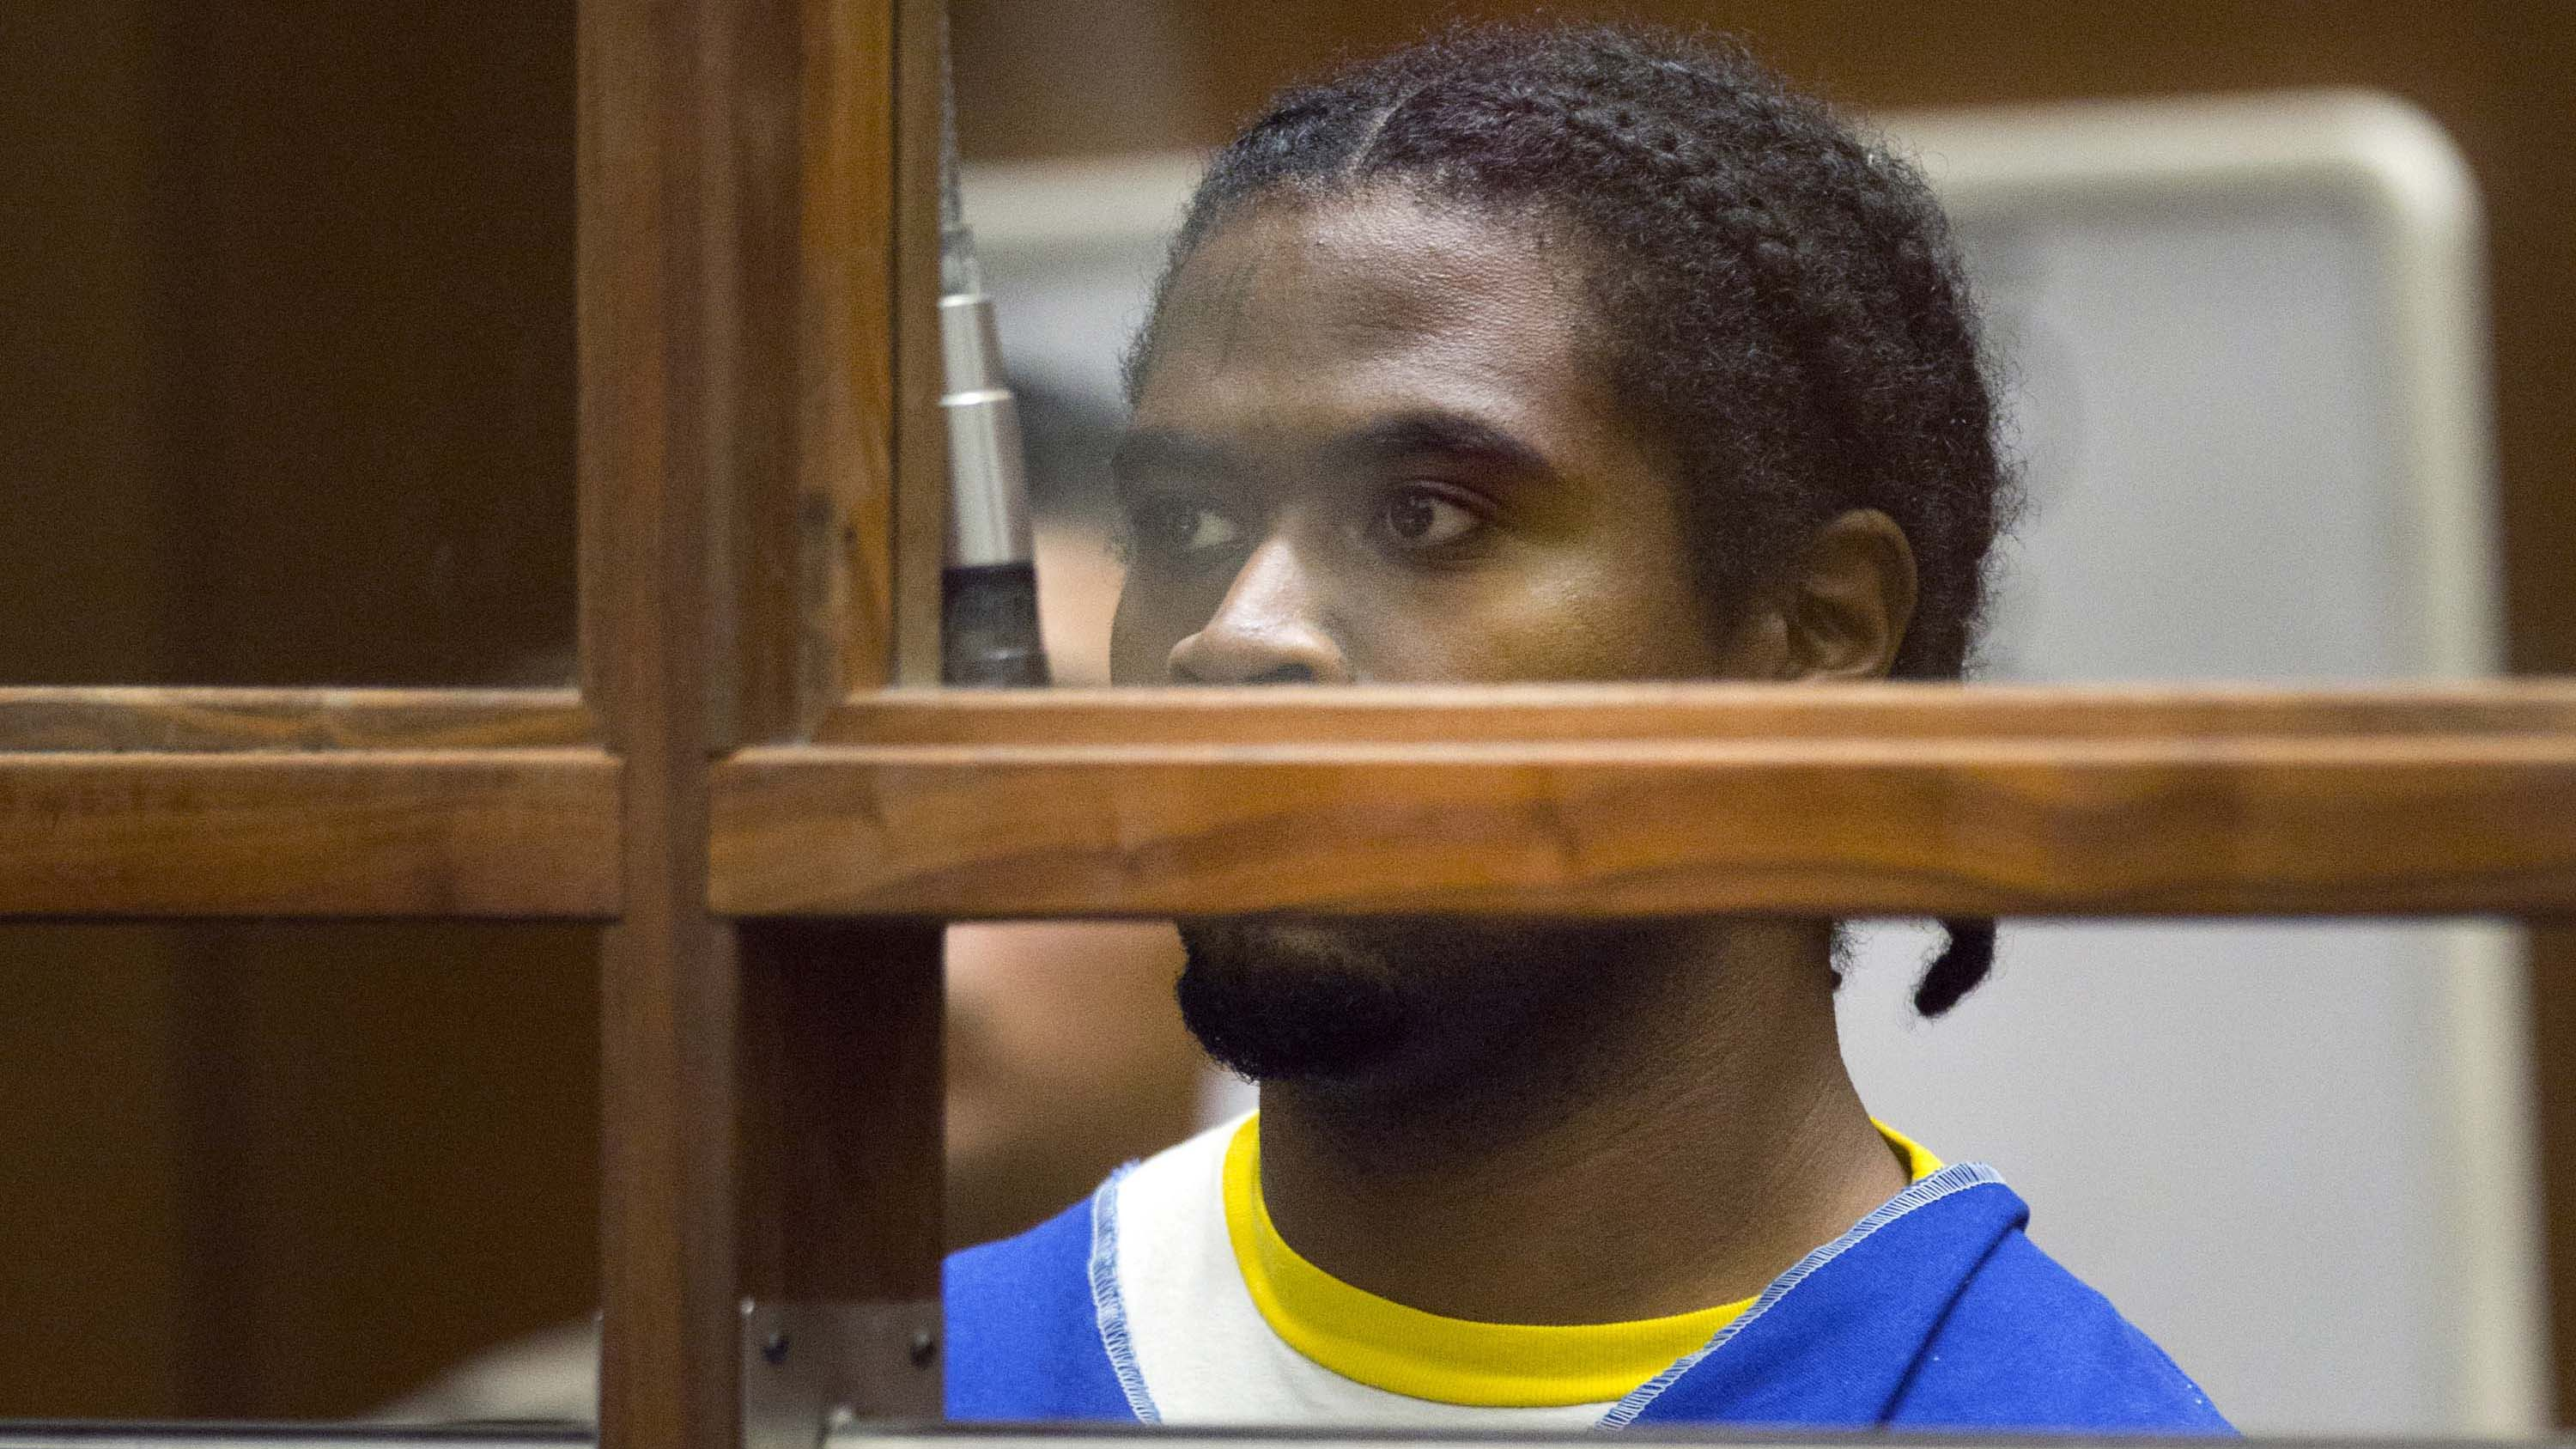 Gene Evin Atkins appears in court for the first time in Los Angeles Superior court in Los Angeles Tuesday, July 24, 2018. Police say Atkins shot his grandmother seven times, kidnapped his 17-year-old girlfriend and shot at officers as they chased his car and then as he ran into the Trader Joe's in the city's Silver Lake section on Saturday afternoon. Police Chief Michel Moore said a store worker, Melyda Corado, was killed by a police officer's bullet as Atkins exchanged gunfire with officers as he ran into the store. Prosecutors say Atkins is being charged with murder under a legal rule that his actions set into motion a series of events leading to Corado being killed. (AP Photo/Damian Dovarganes)